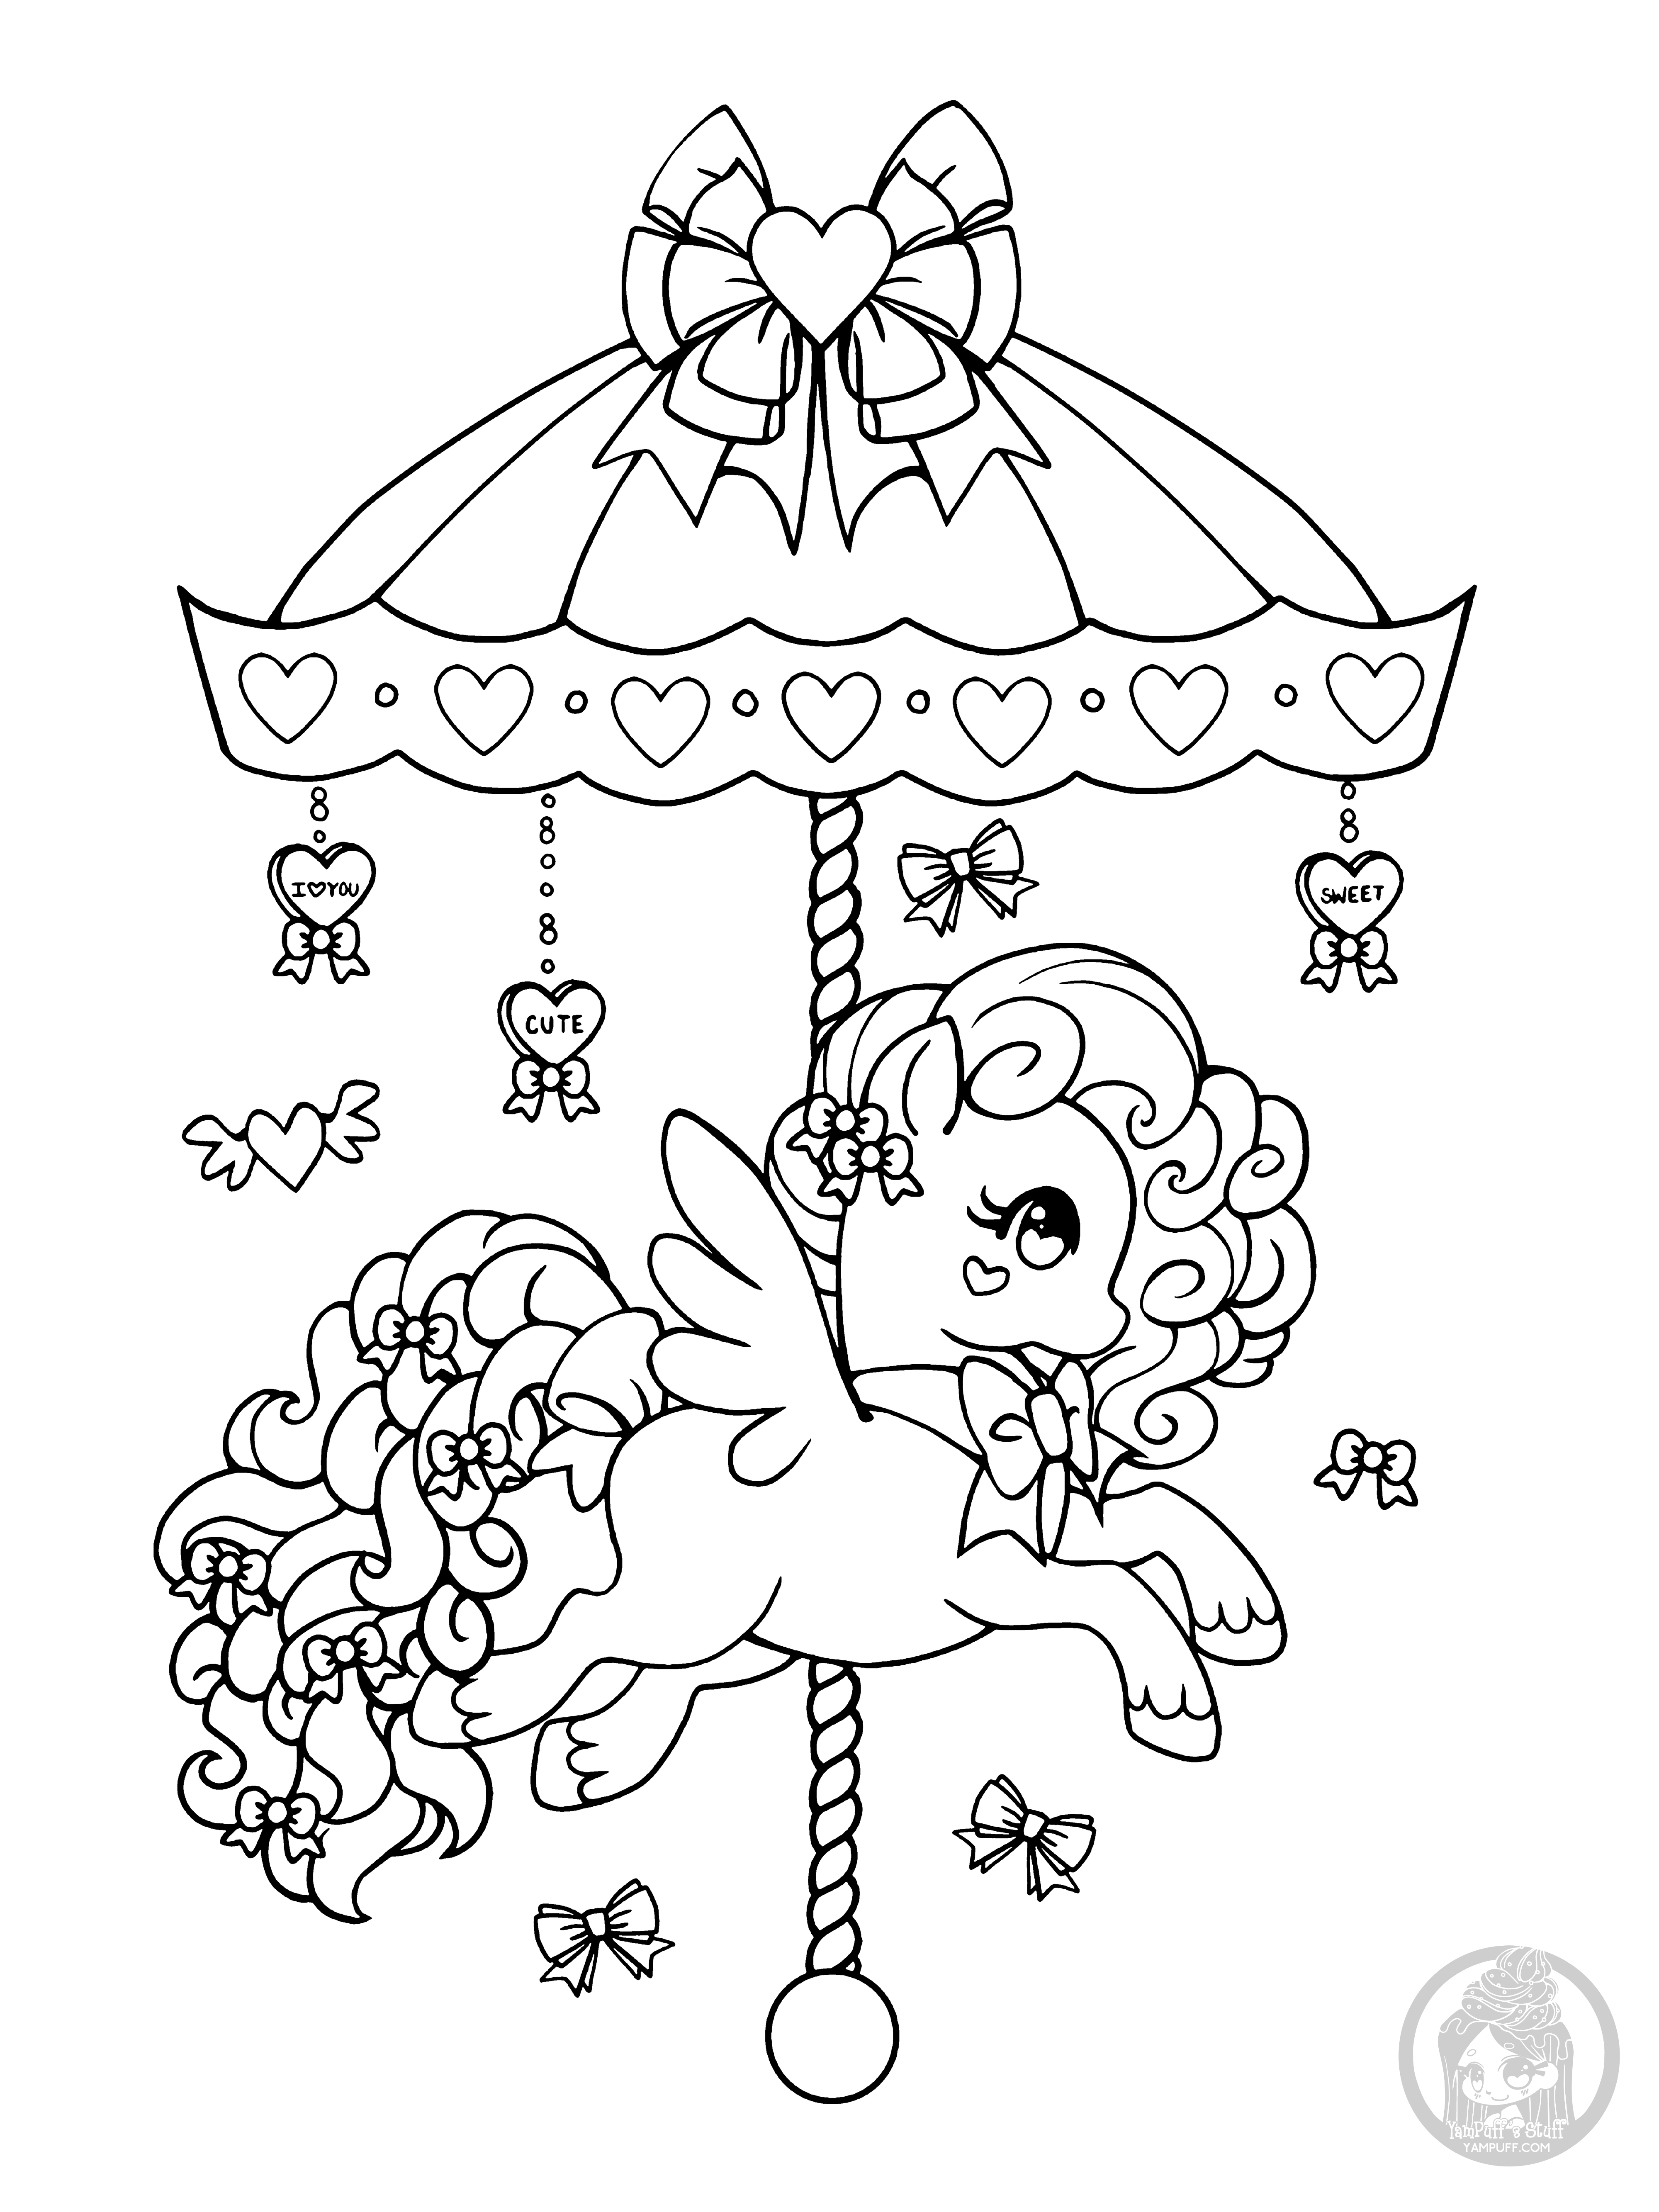 Ponies - Pony Coloring Pages • YamPuff\'s Stuff